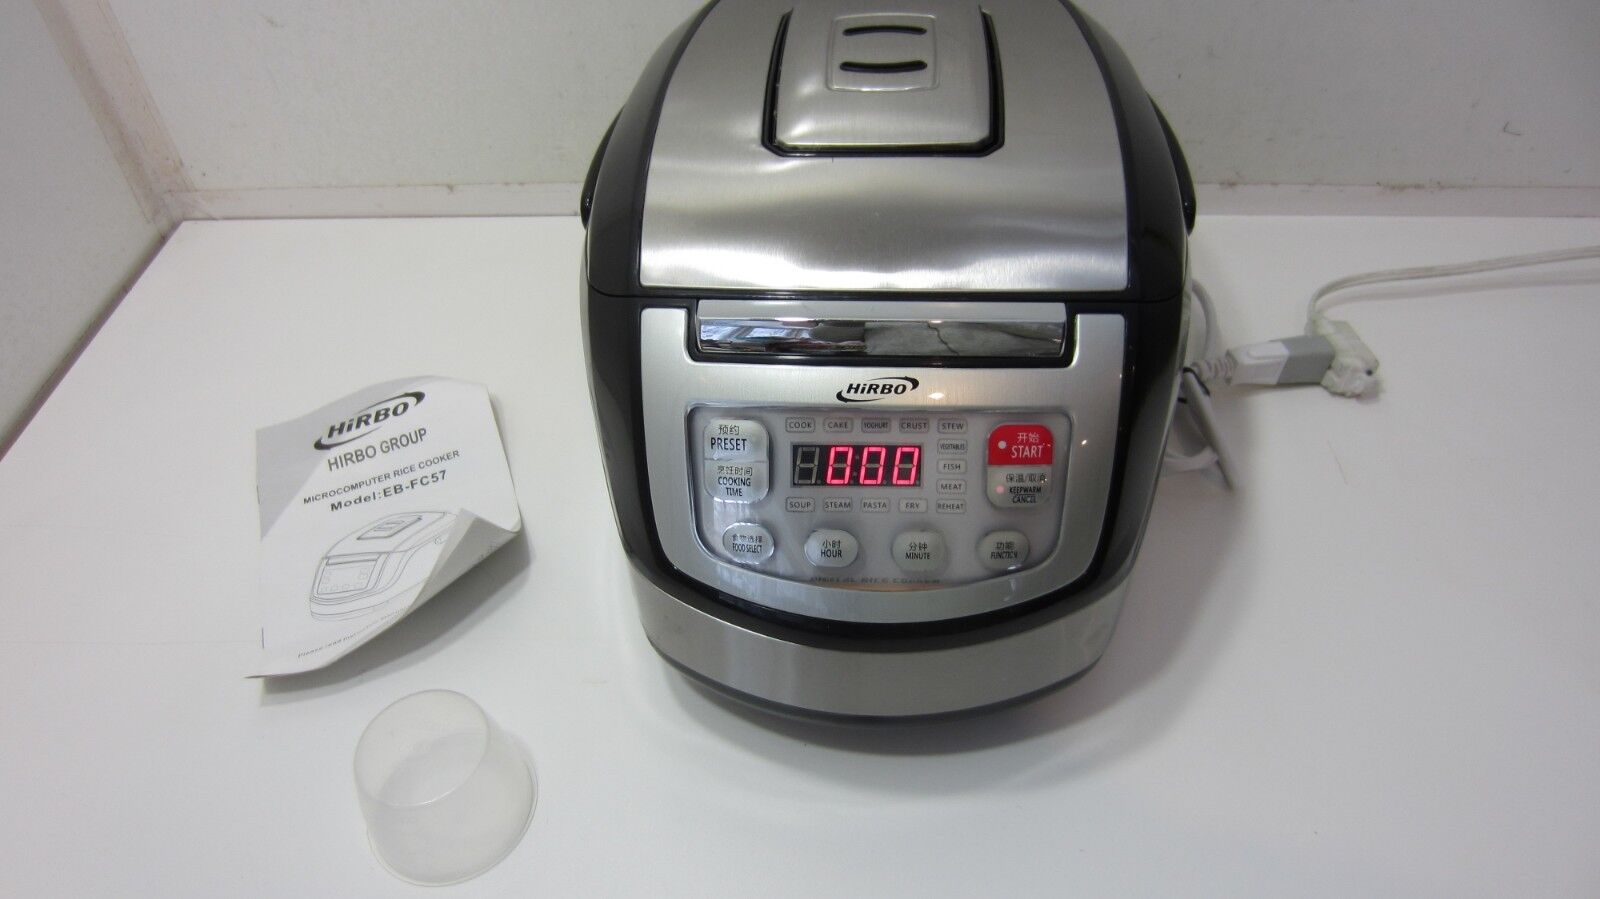 Hirbo EB-FC57 Asian Style 13 in 1 Multifunctional 5-Liter Rice Cooker